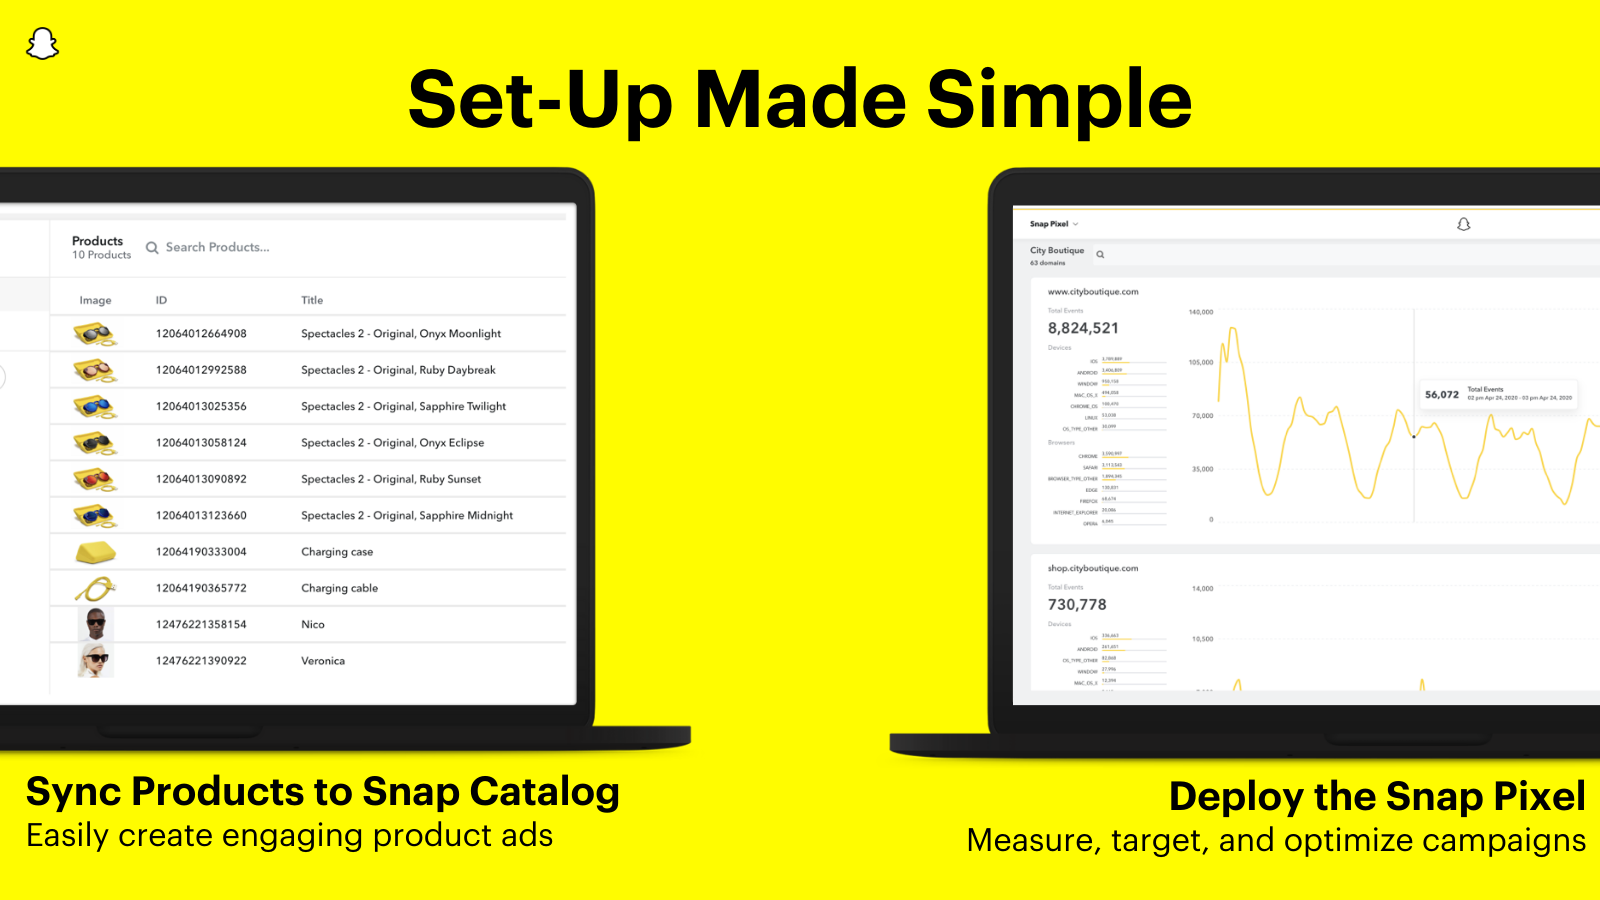 Deploy Snap Pixel and sync products to Snap Catalog